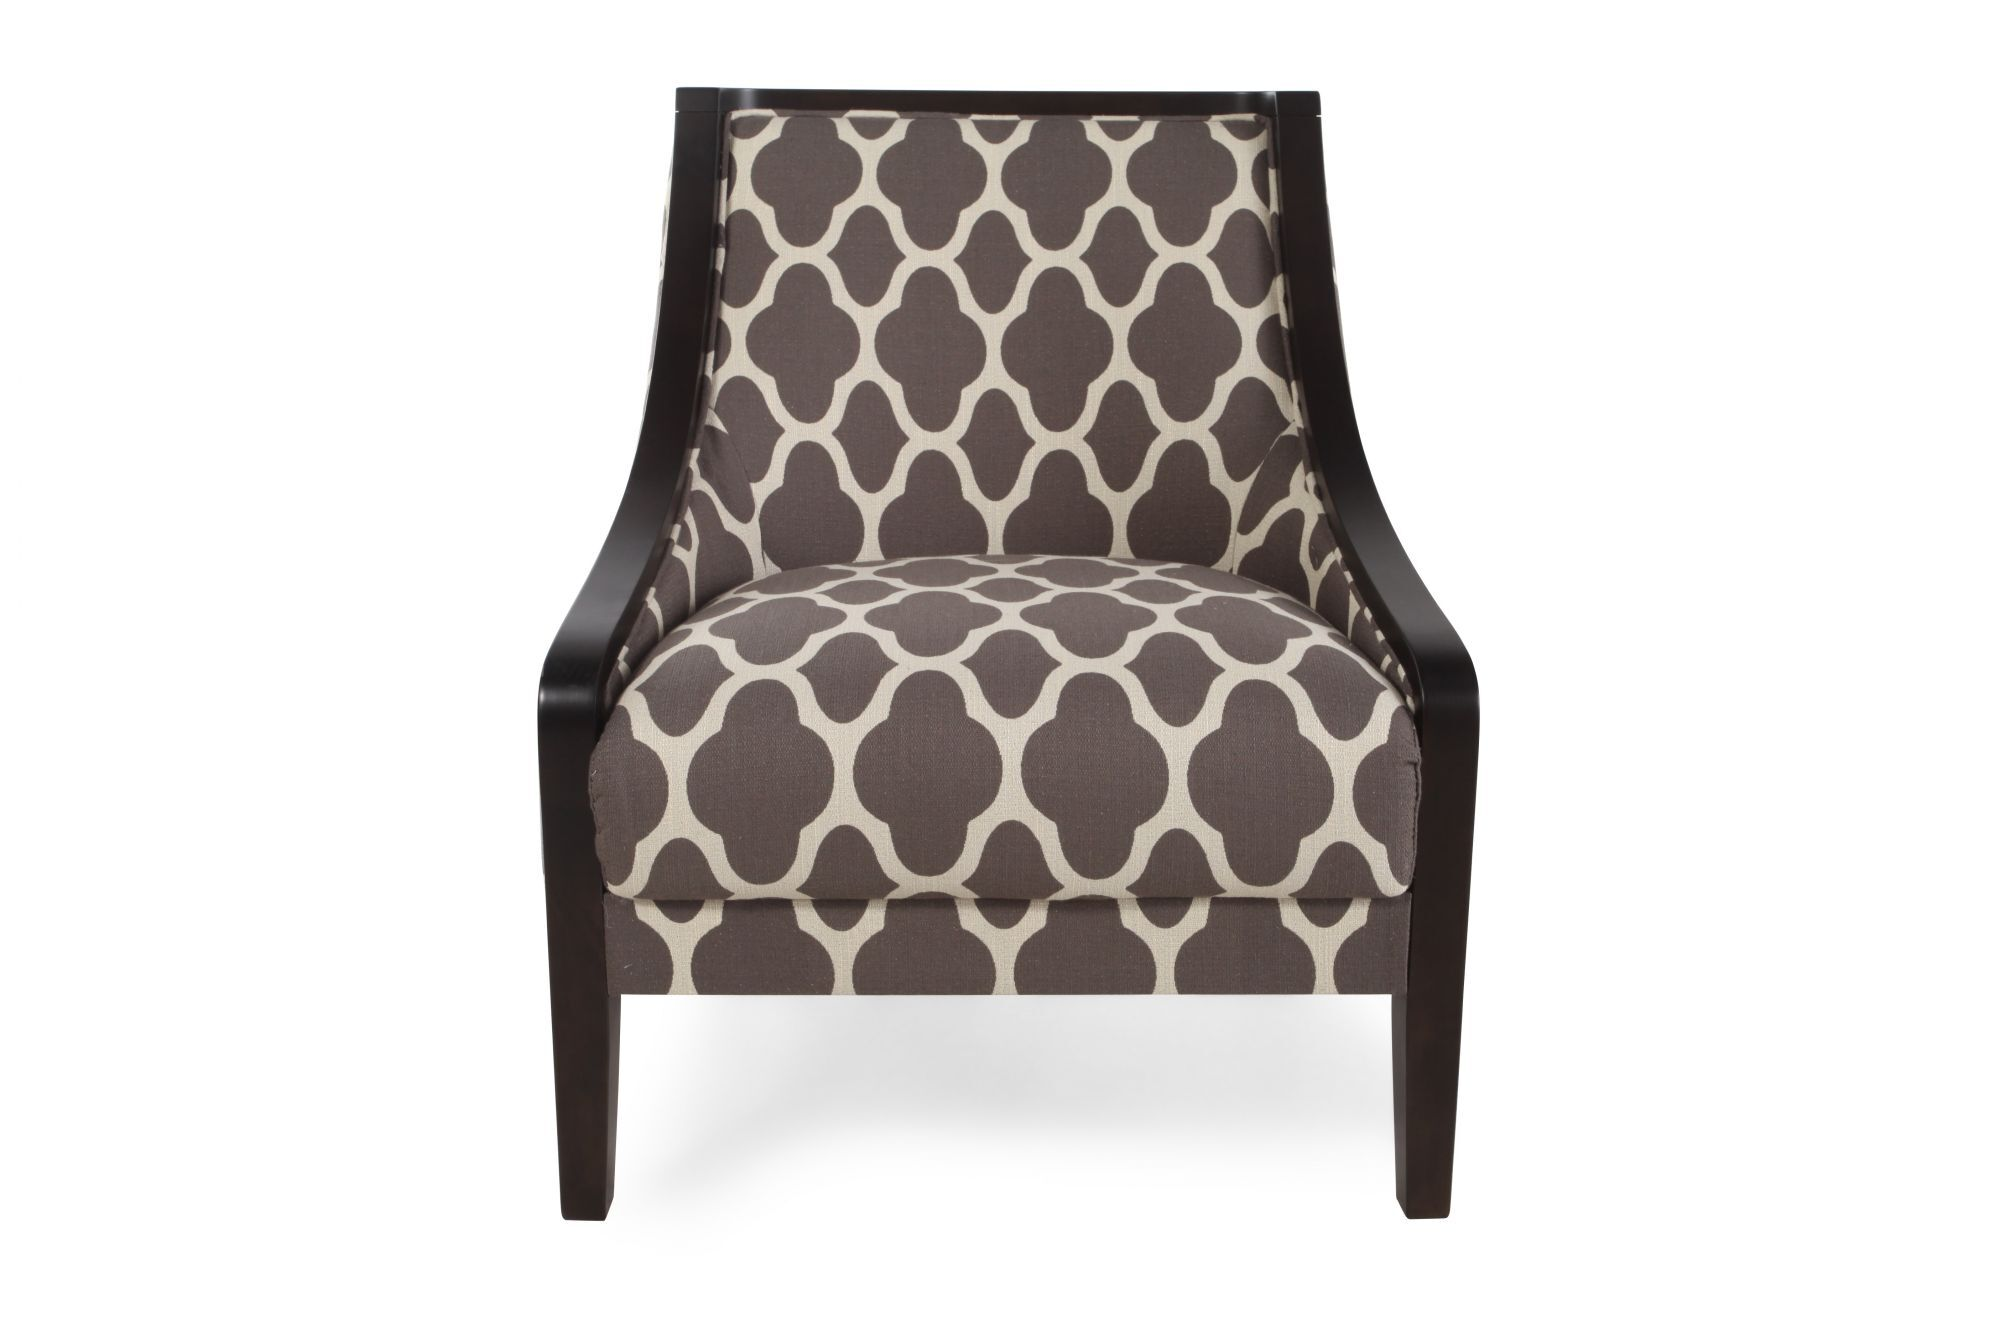 Quatrefoil Patterned Contemporary 28 Accent Chair in Dove